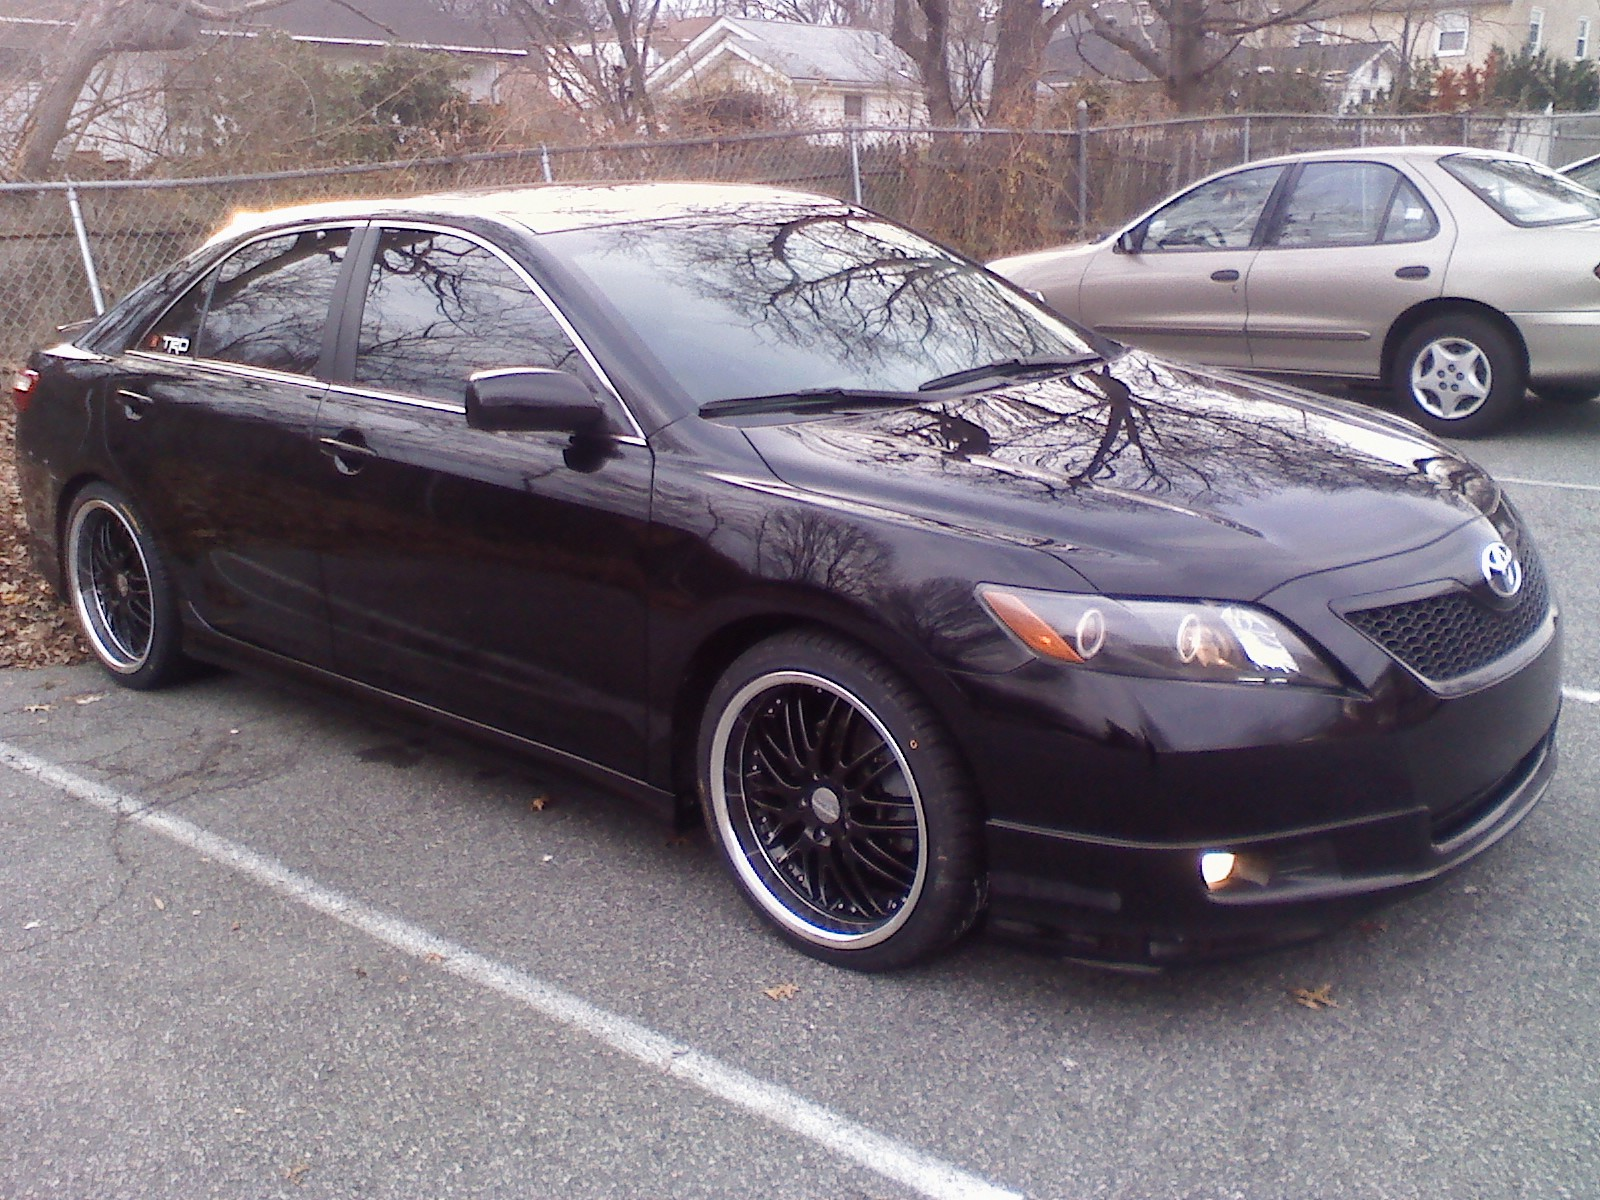 Toyota Camry wheels #3